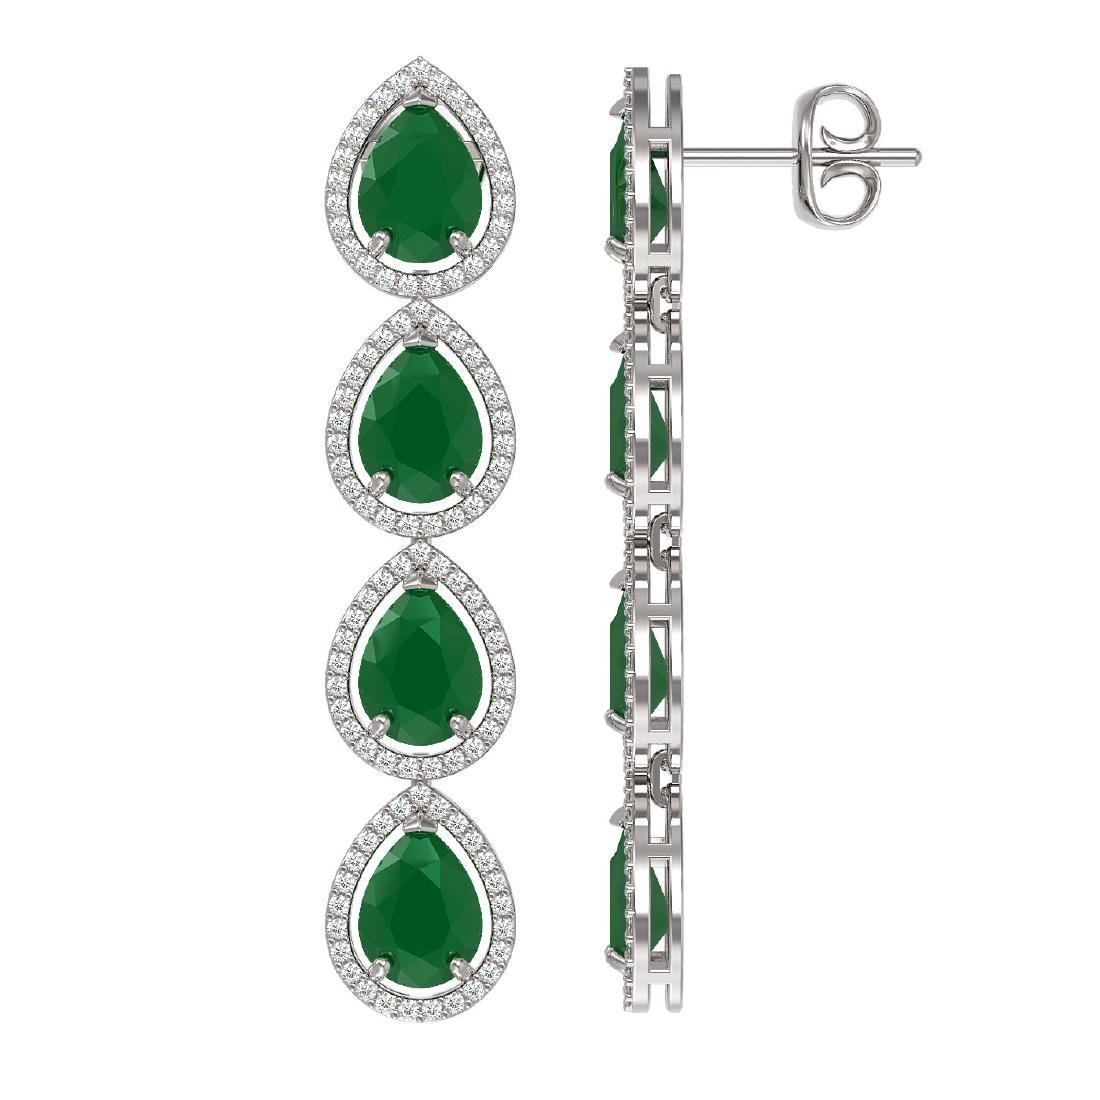 16.01 CTW Emerald & Diamond Halo Earrings 10K White - 2